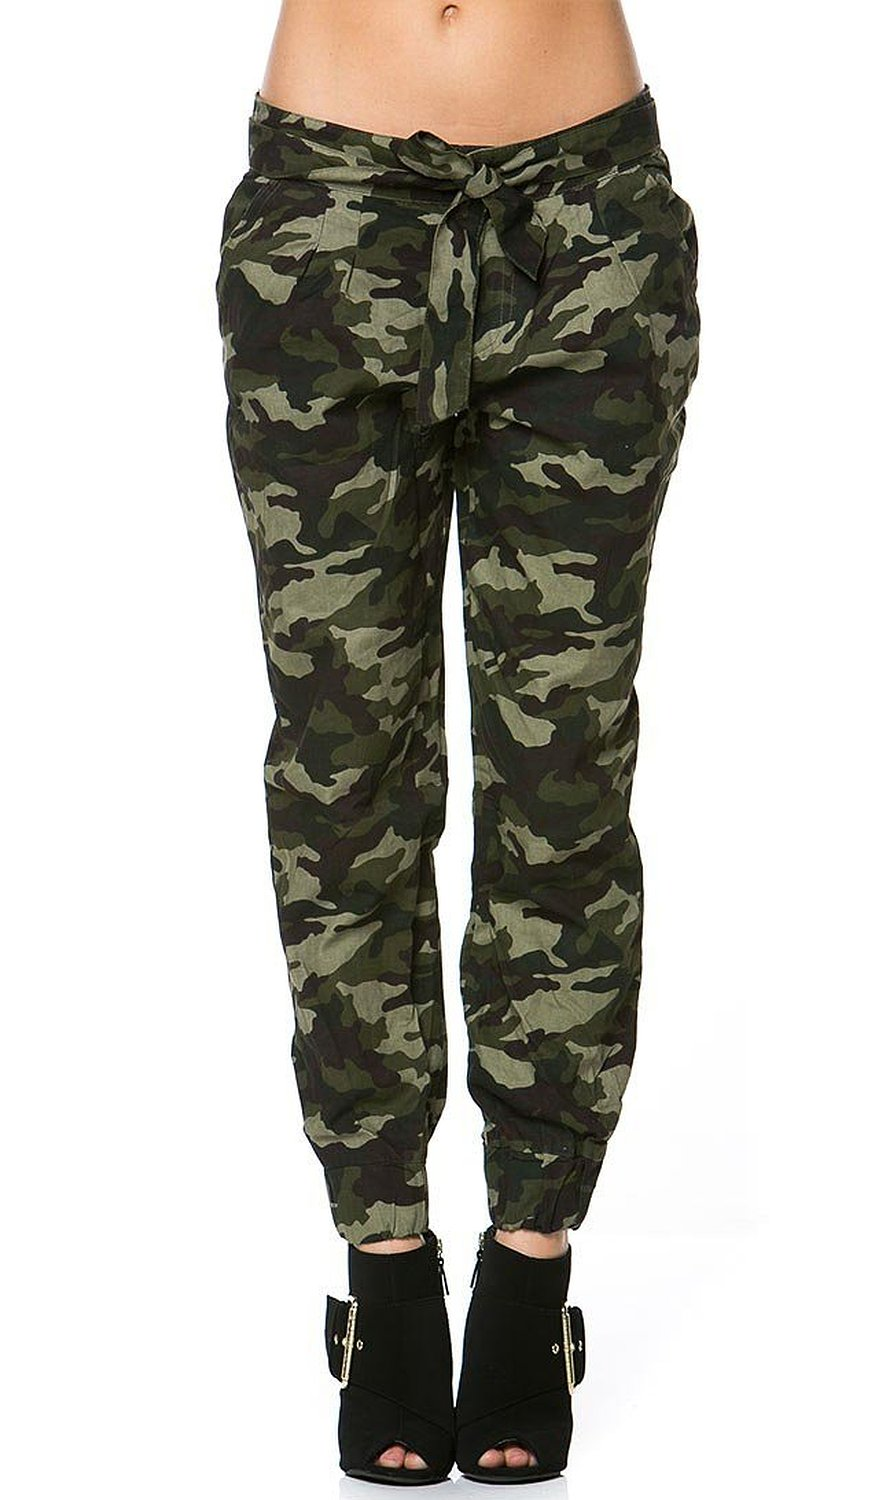 Amazing Womens Military Look Comfortable Camouflage Cargo Jogger Pants 21524 | EBay